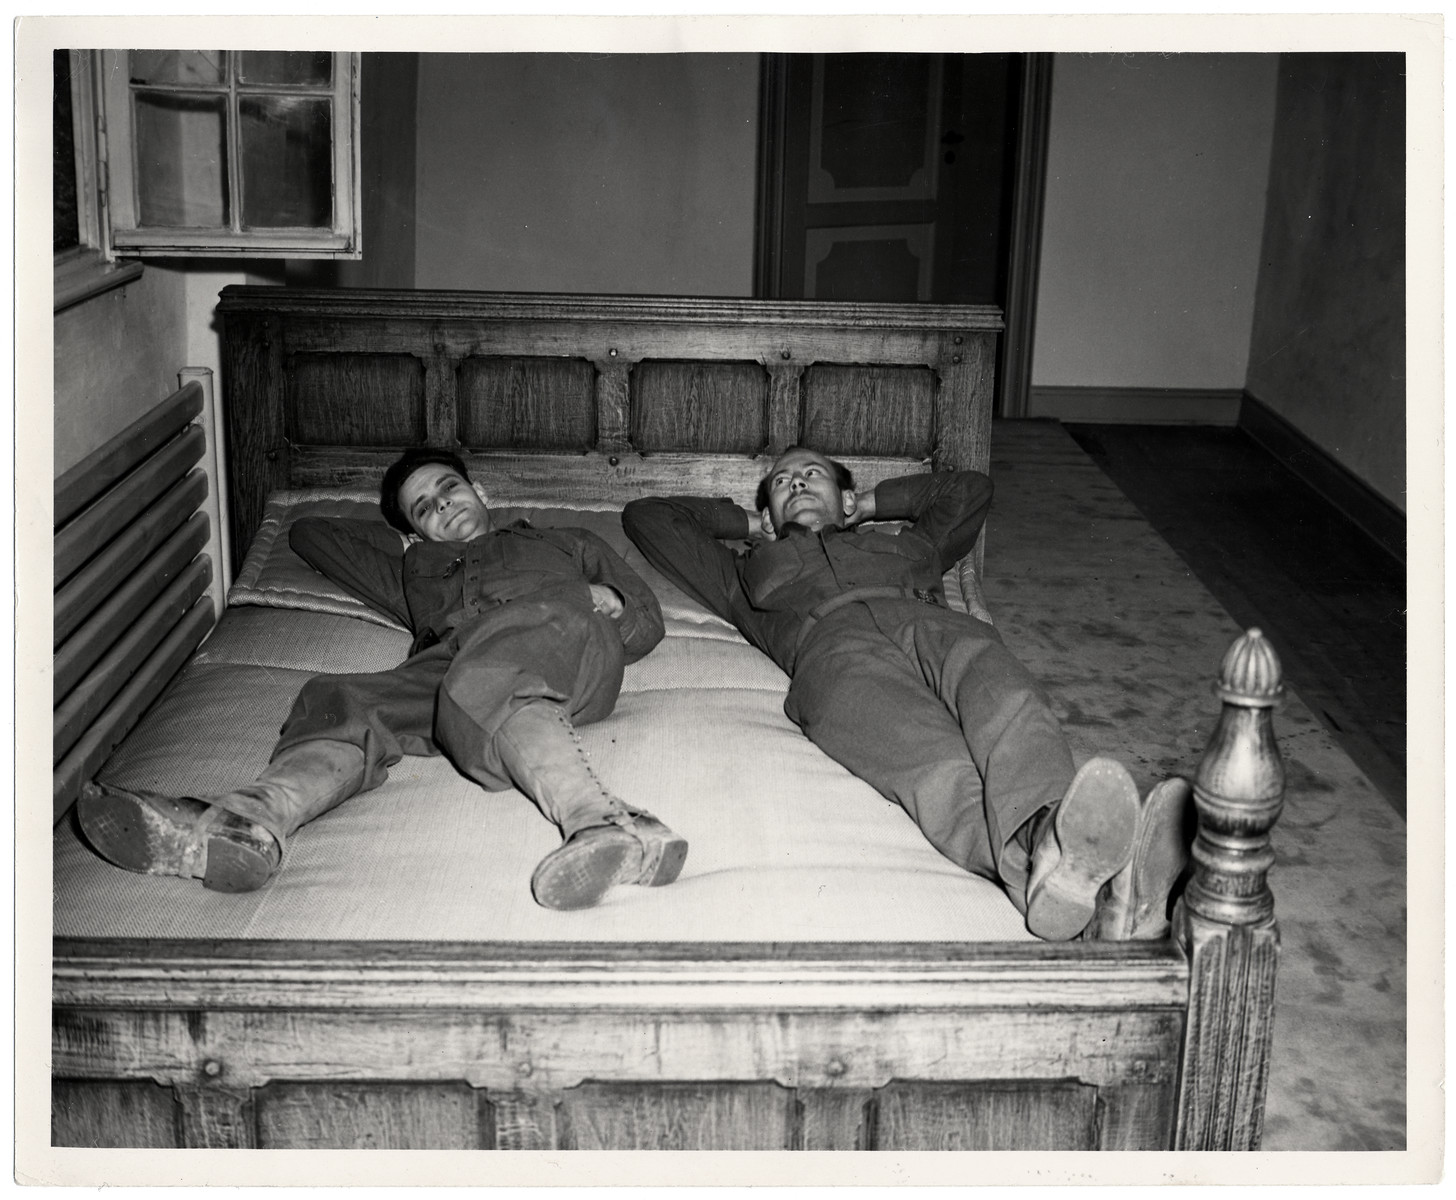 Sgt. Everett Steiger from Salem, Oregon and T/4 Joseph W. Eaton relax on the bed that had belonged to Joseph Goebbels at Schloss Rheydt.   It was moved into the hallway by the GI's who are now billeted in the castle and need his room.